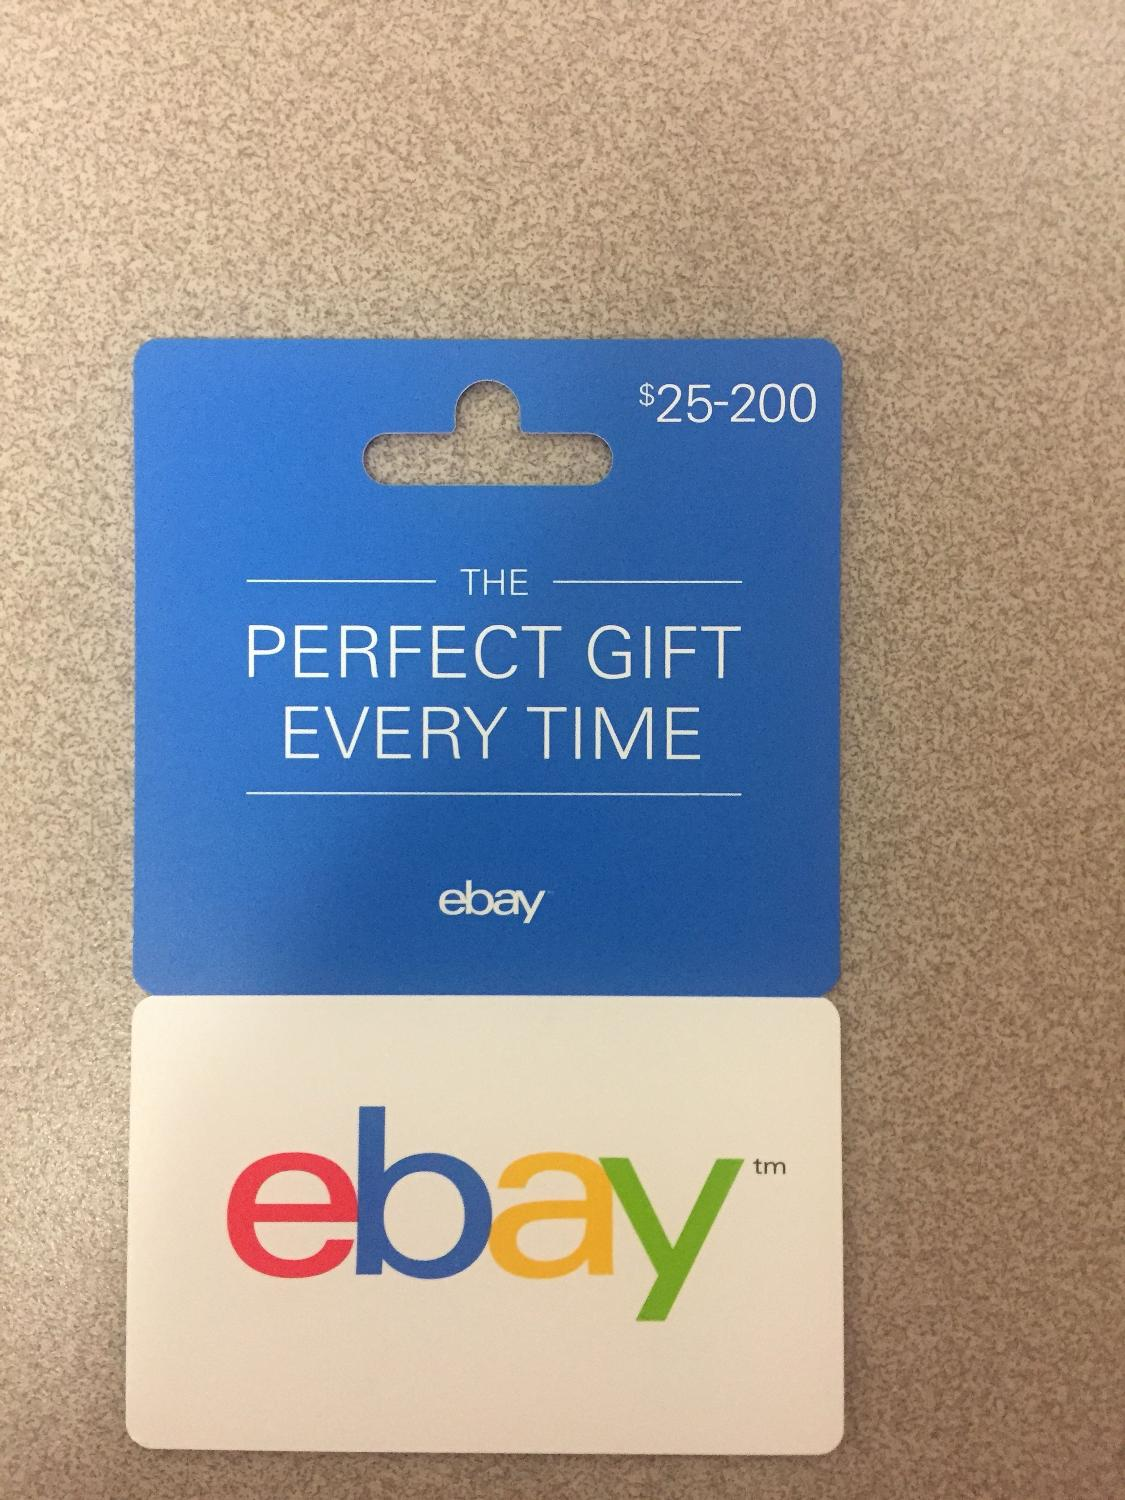 Find More 100 Ebay Gift Card For 85 Final Reduction For Sale At Up To 90 Off